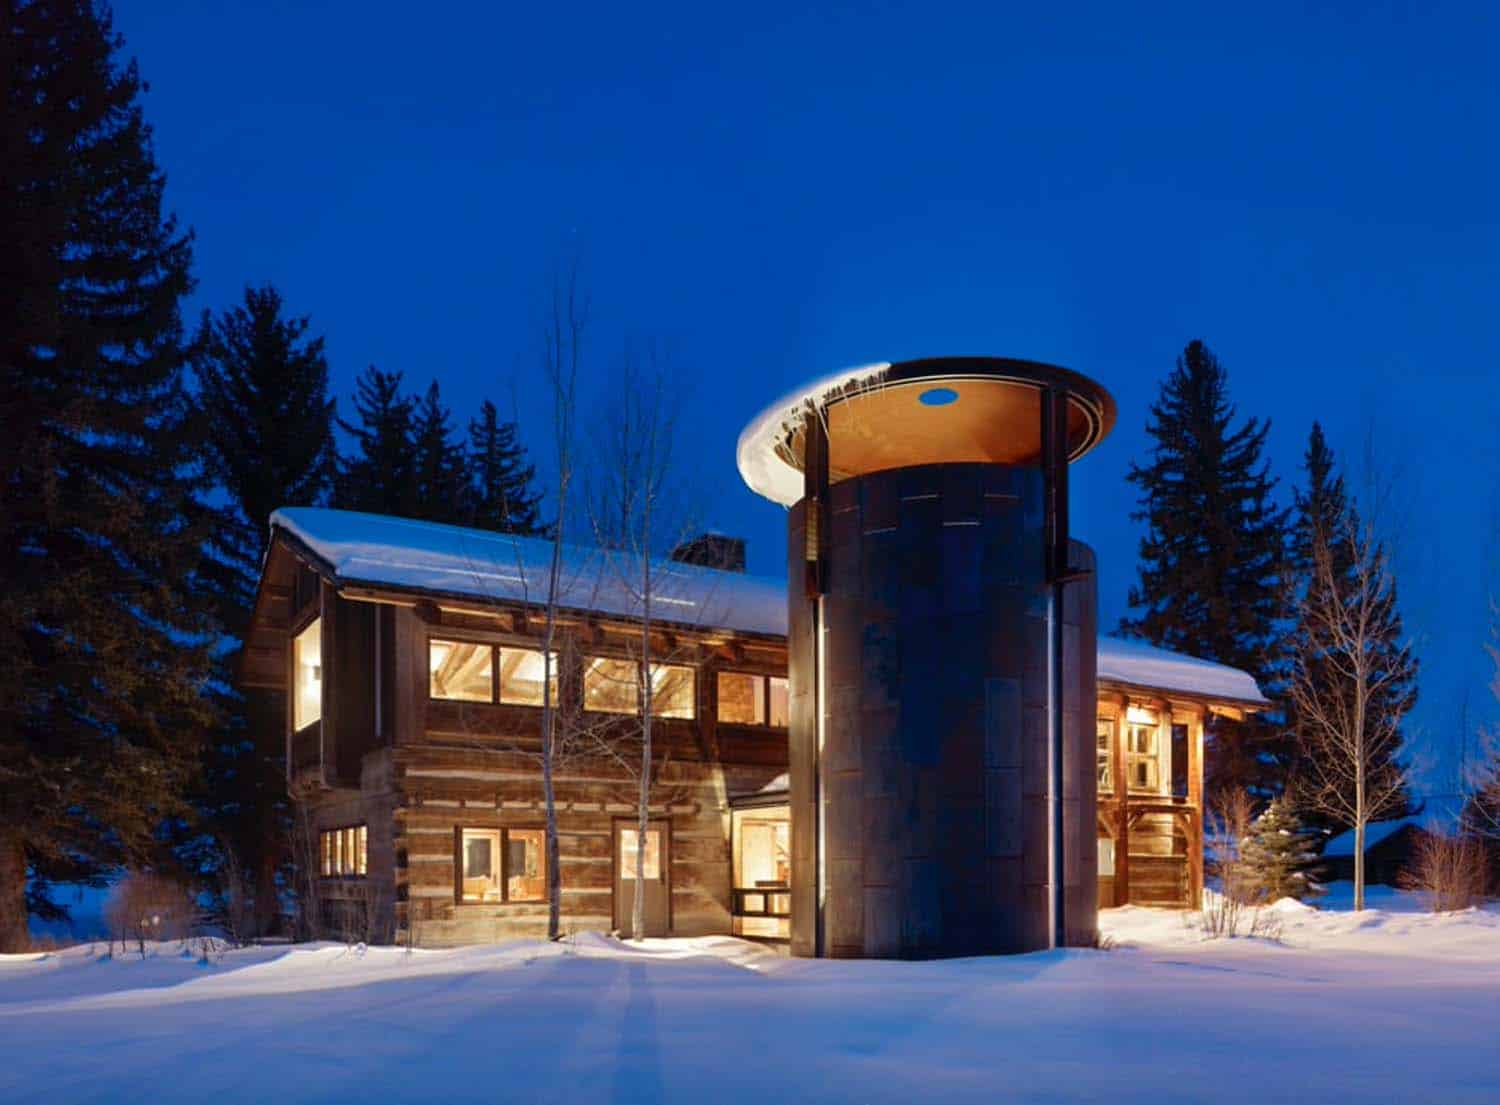 rustic-lodge-house-exterior-with-wine-silo